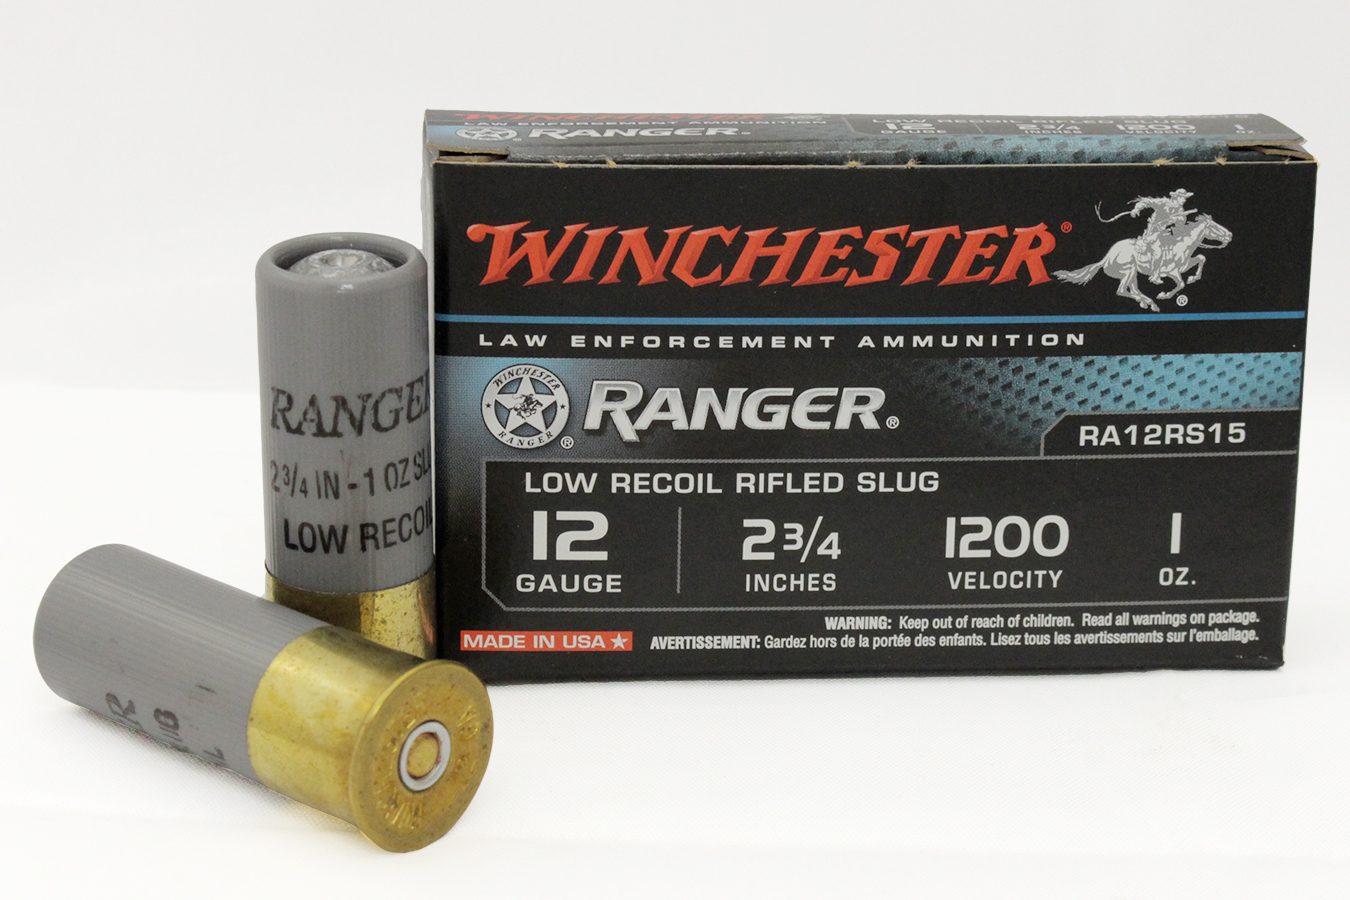 12 GAUGE 2 3/4 IN 1OZ RANGER TRADE AMMO